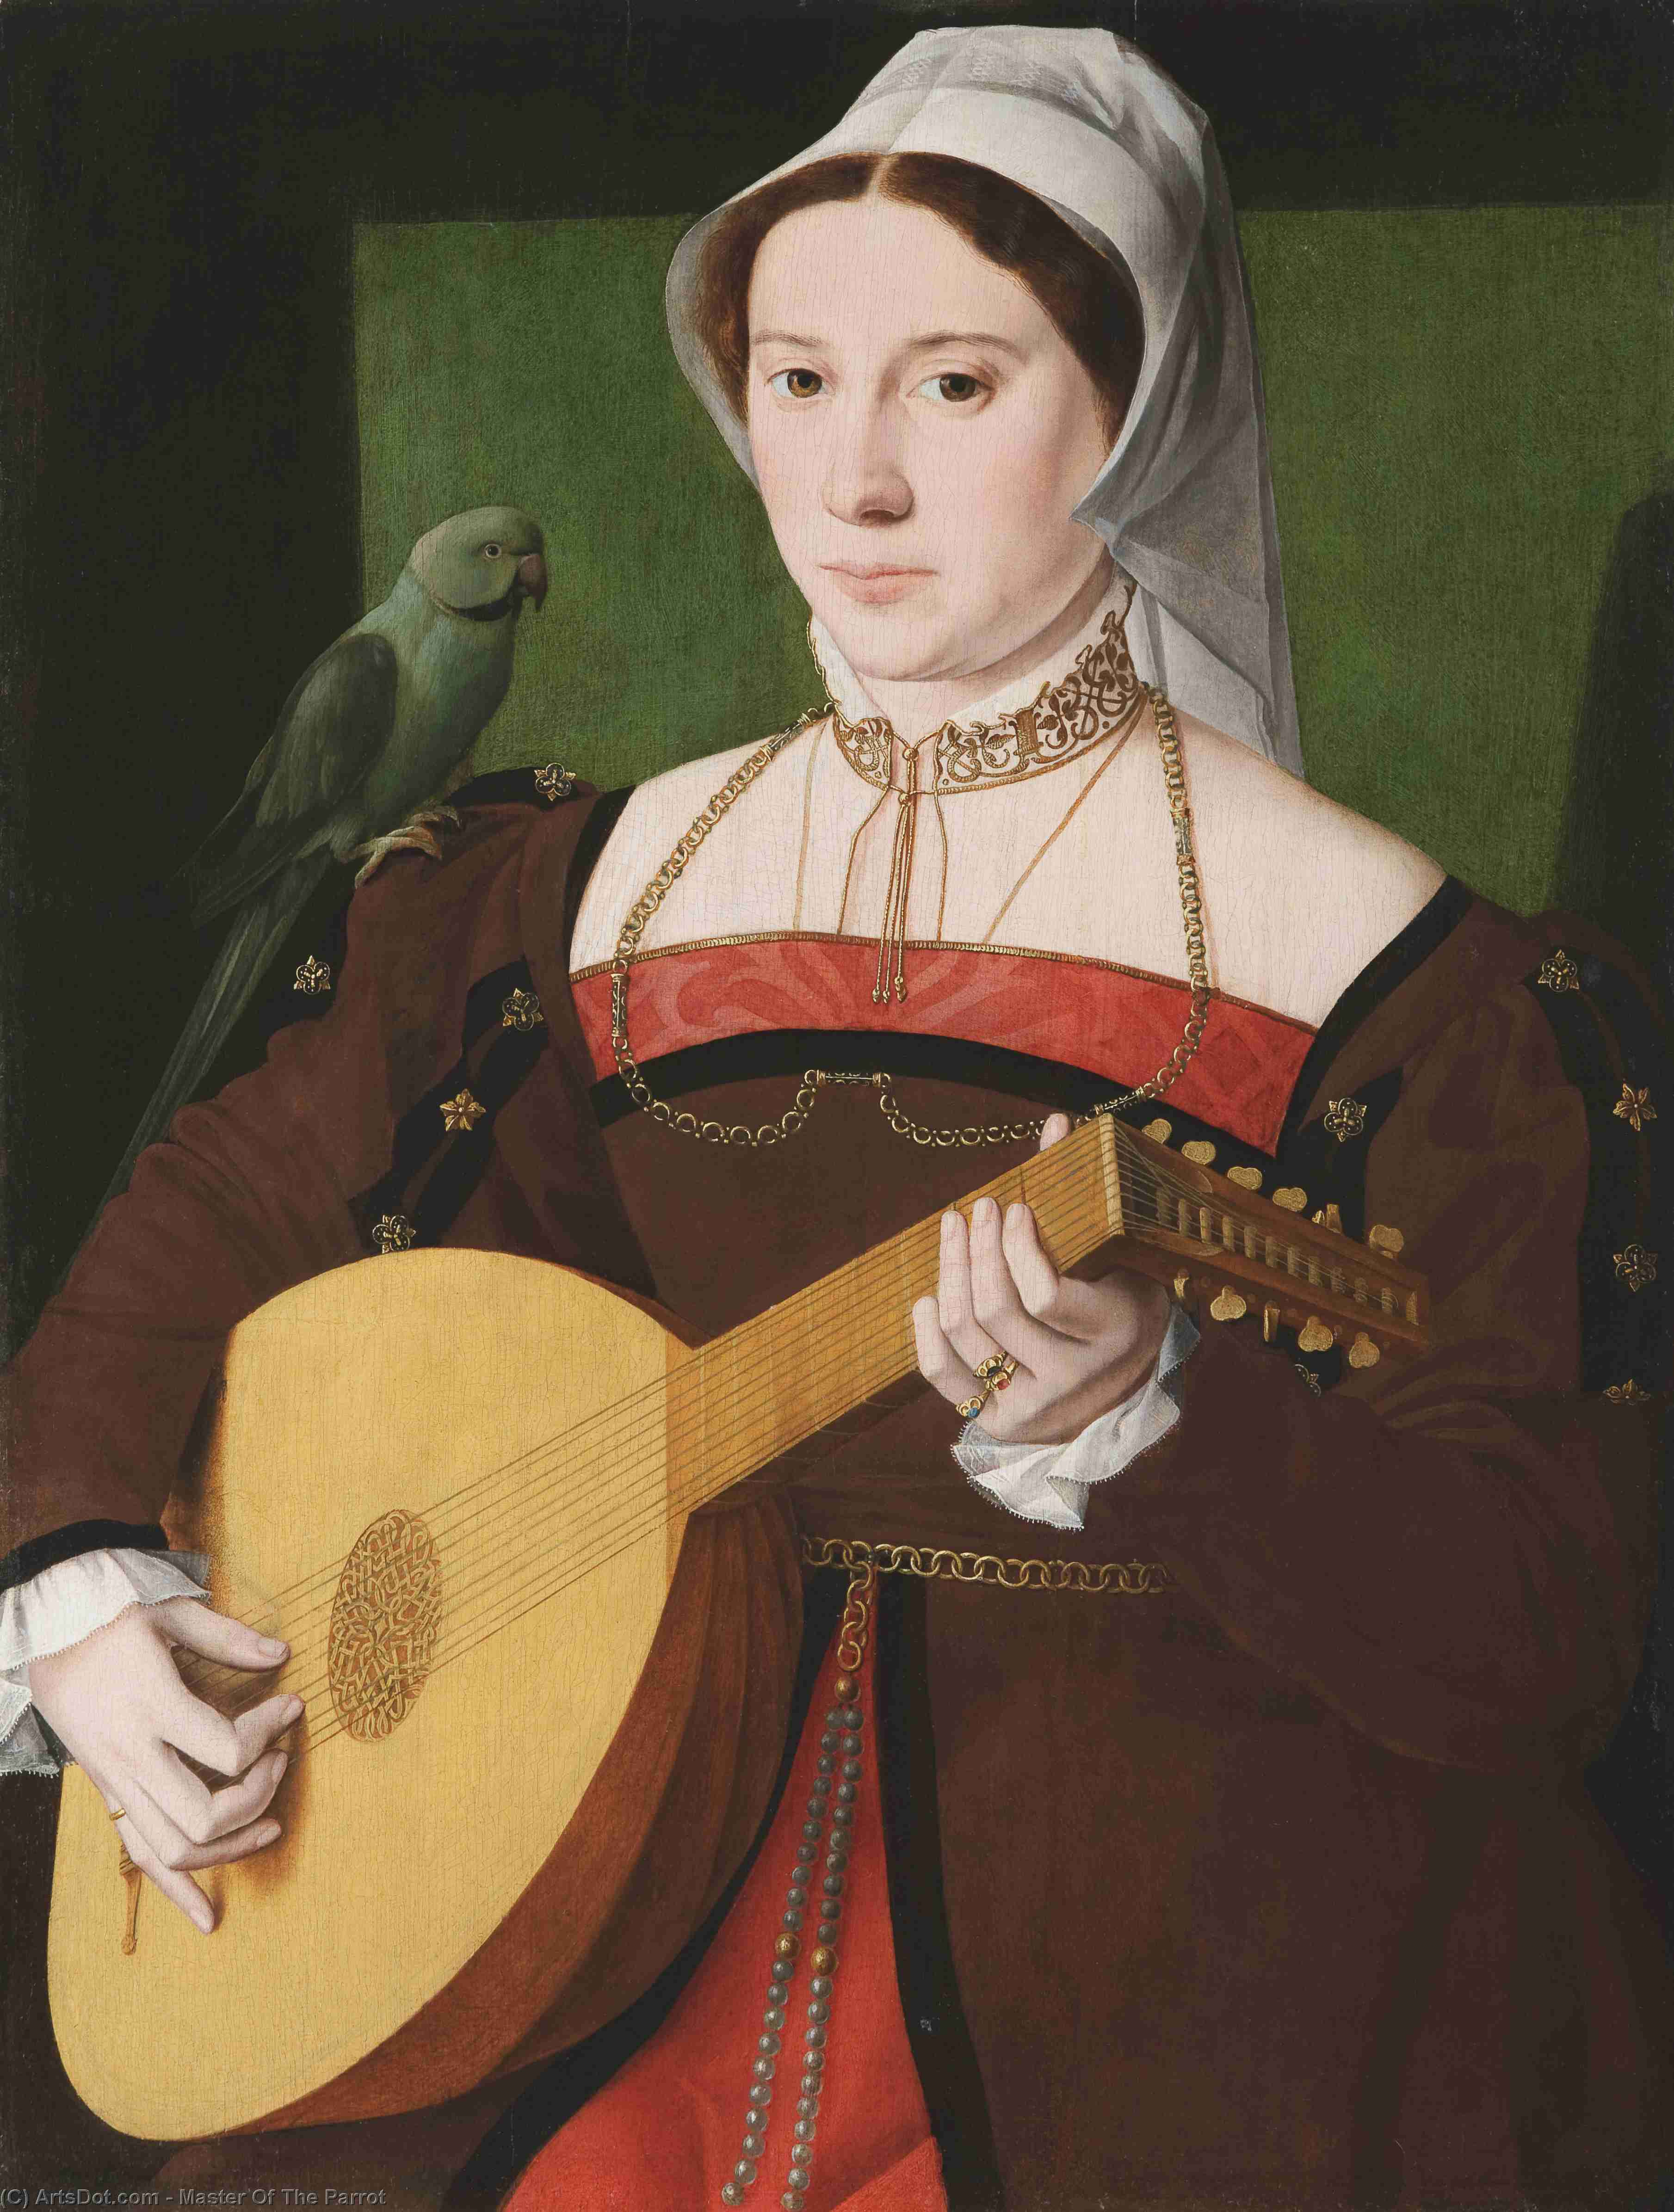 Portrait Of A Woman by Master Of The Parrot